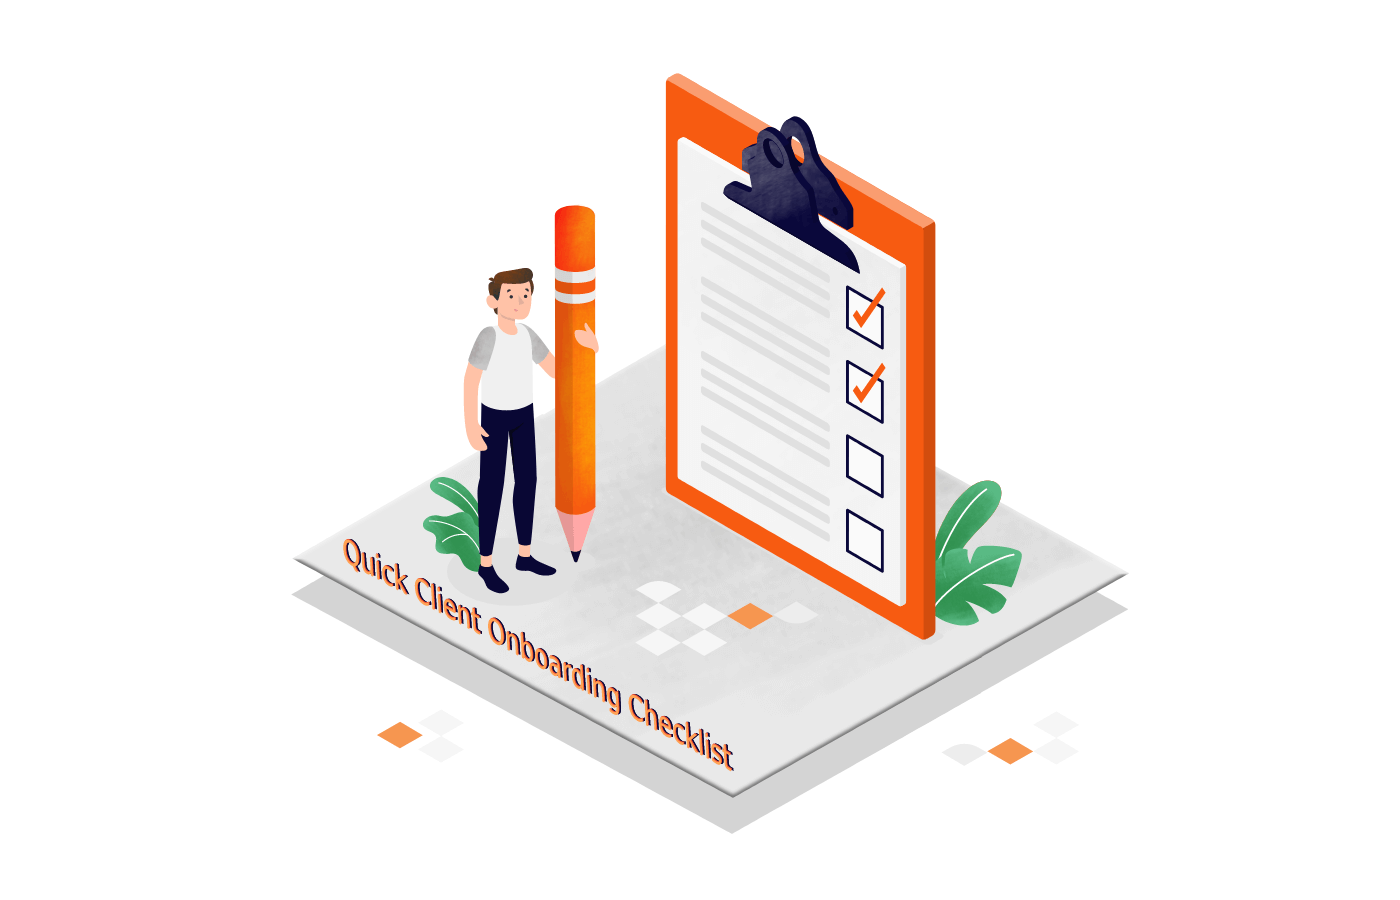 the_quick_client_onboarding_checklist